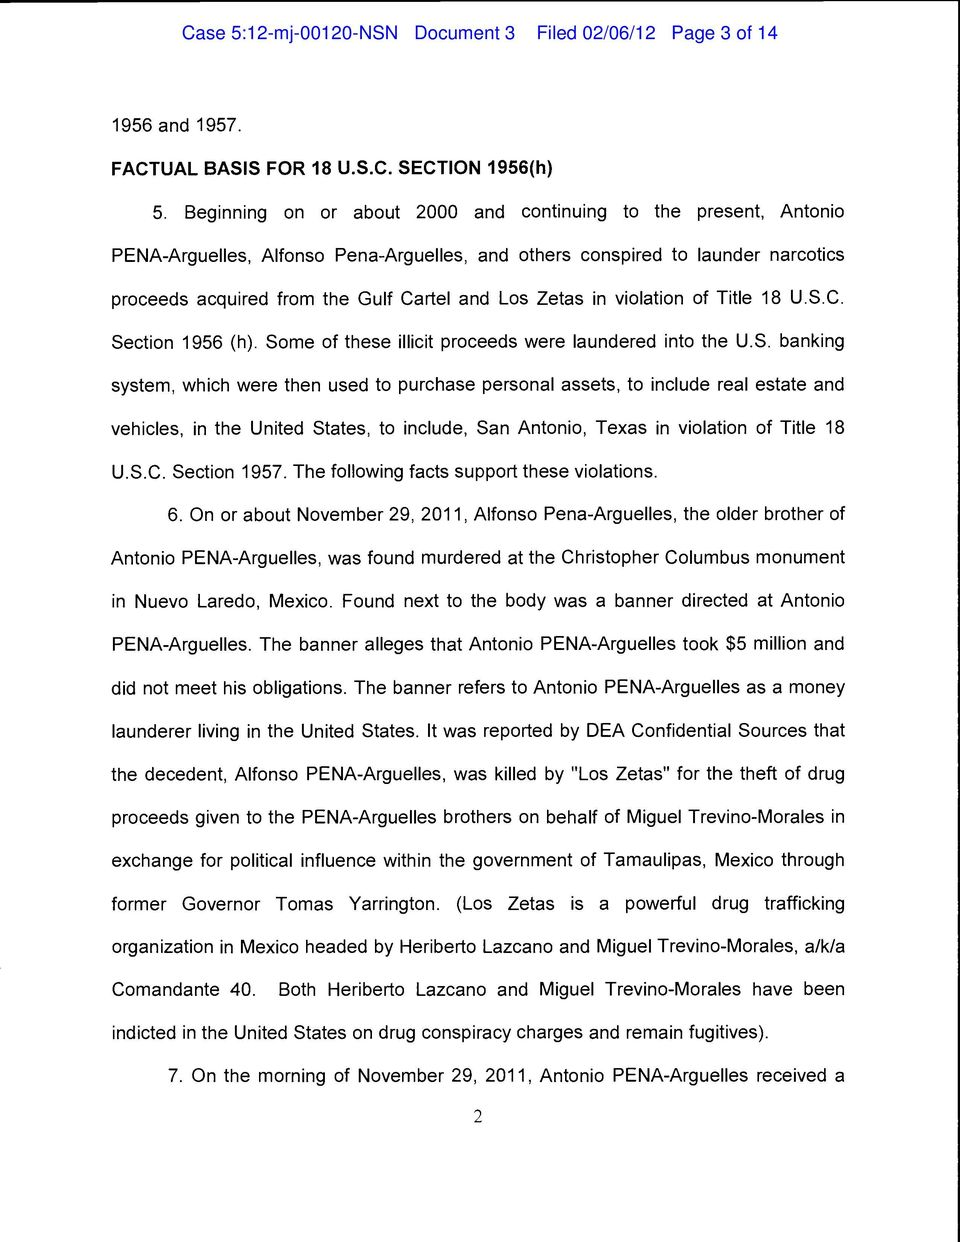 Zetas in violation of Title 18 u.s.c. Section 1956 (h). Some of these illicit proceeds were laundered into the u.s. banking system, which were then used to purchase personal assets, to include real estate and vehicles, in the united States, to include, San Antonio, Texas in violation of Title 18 U.